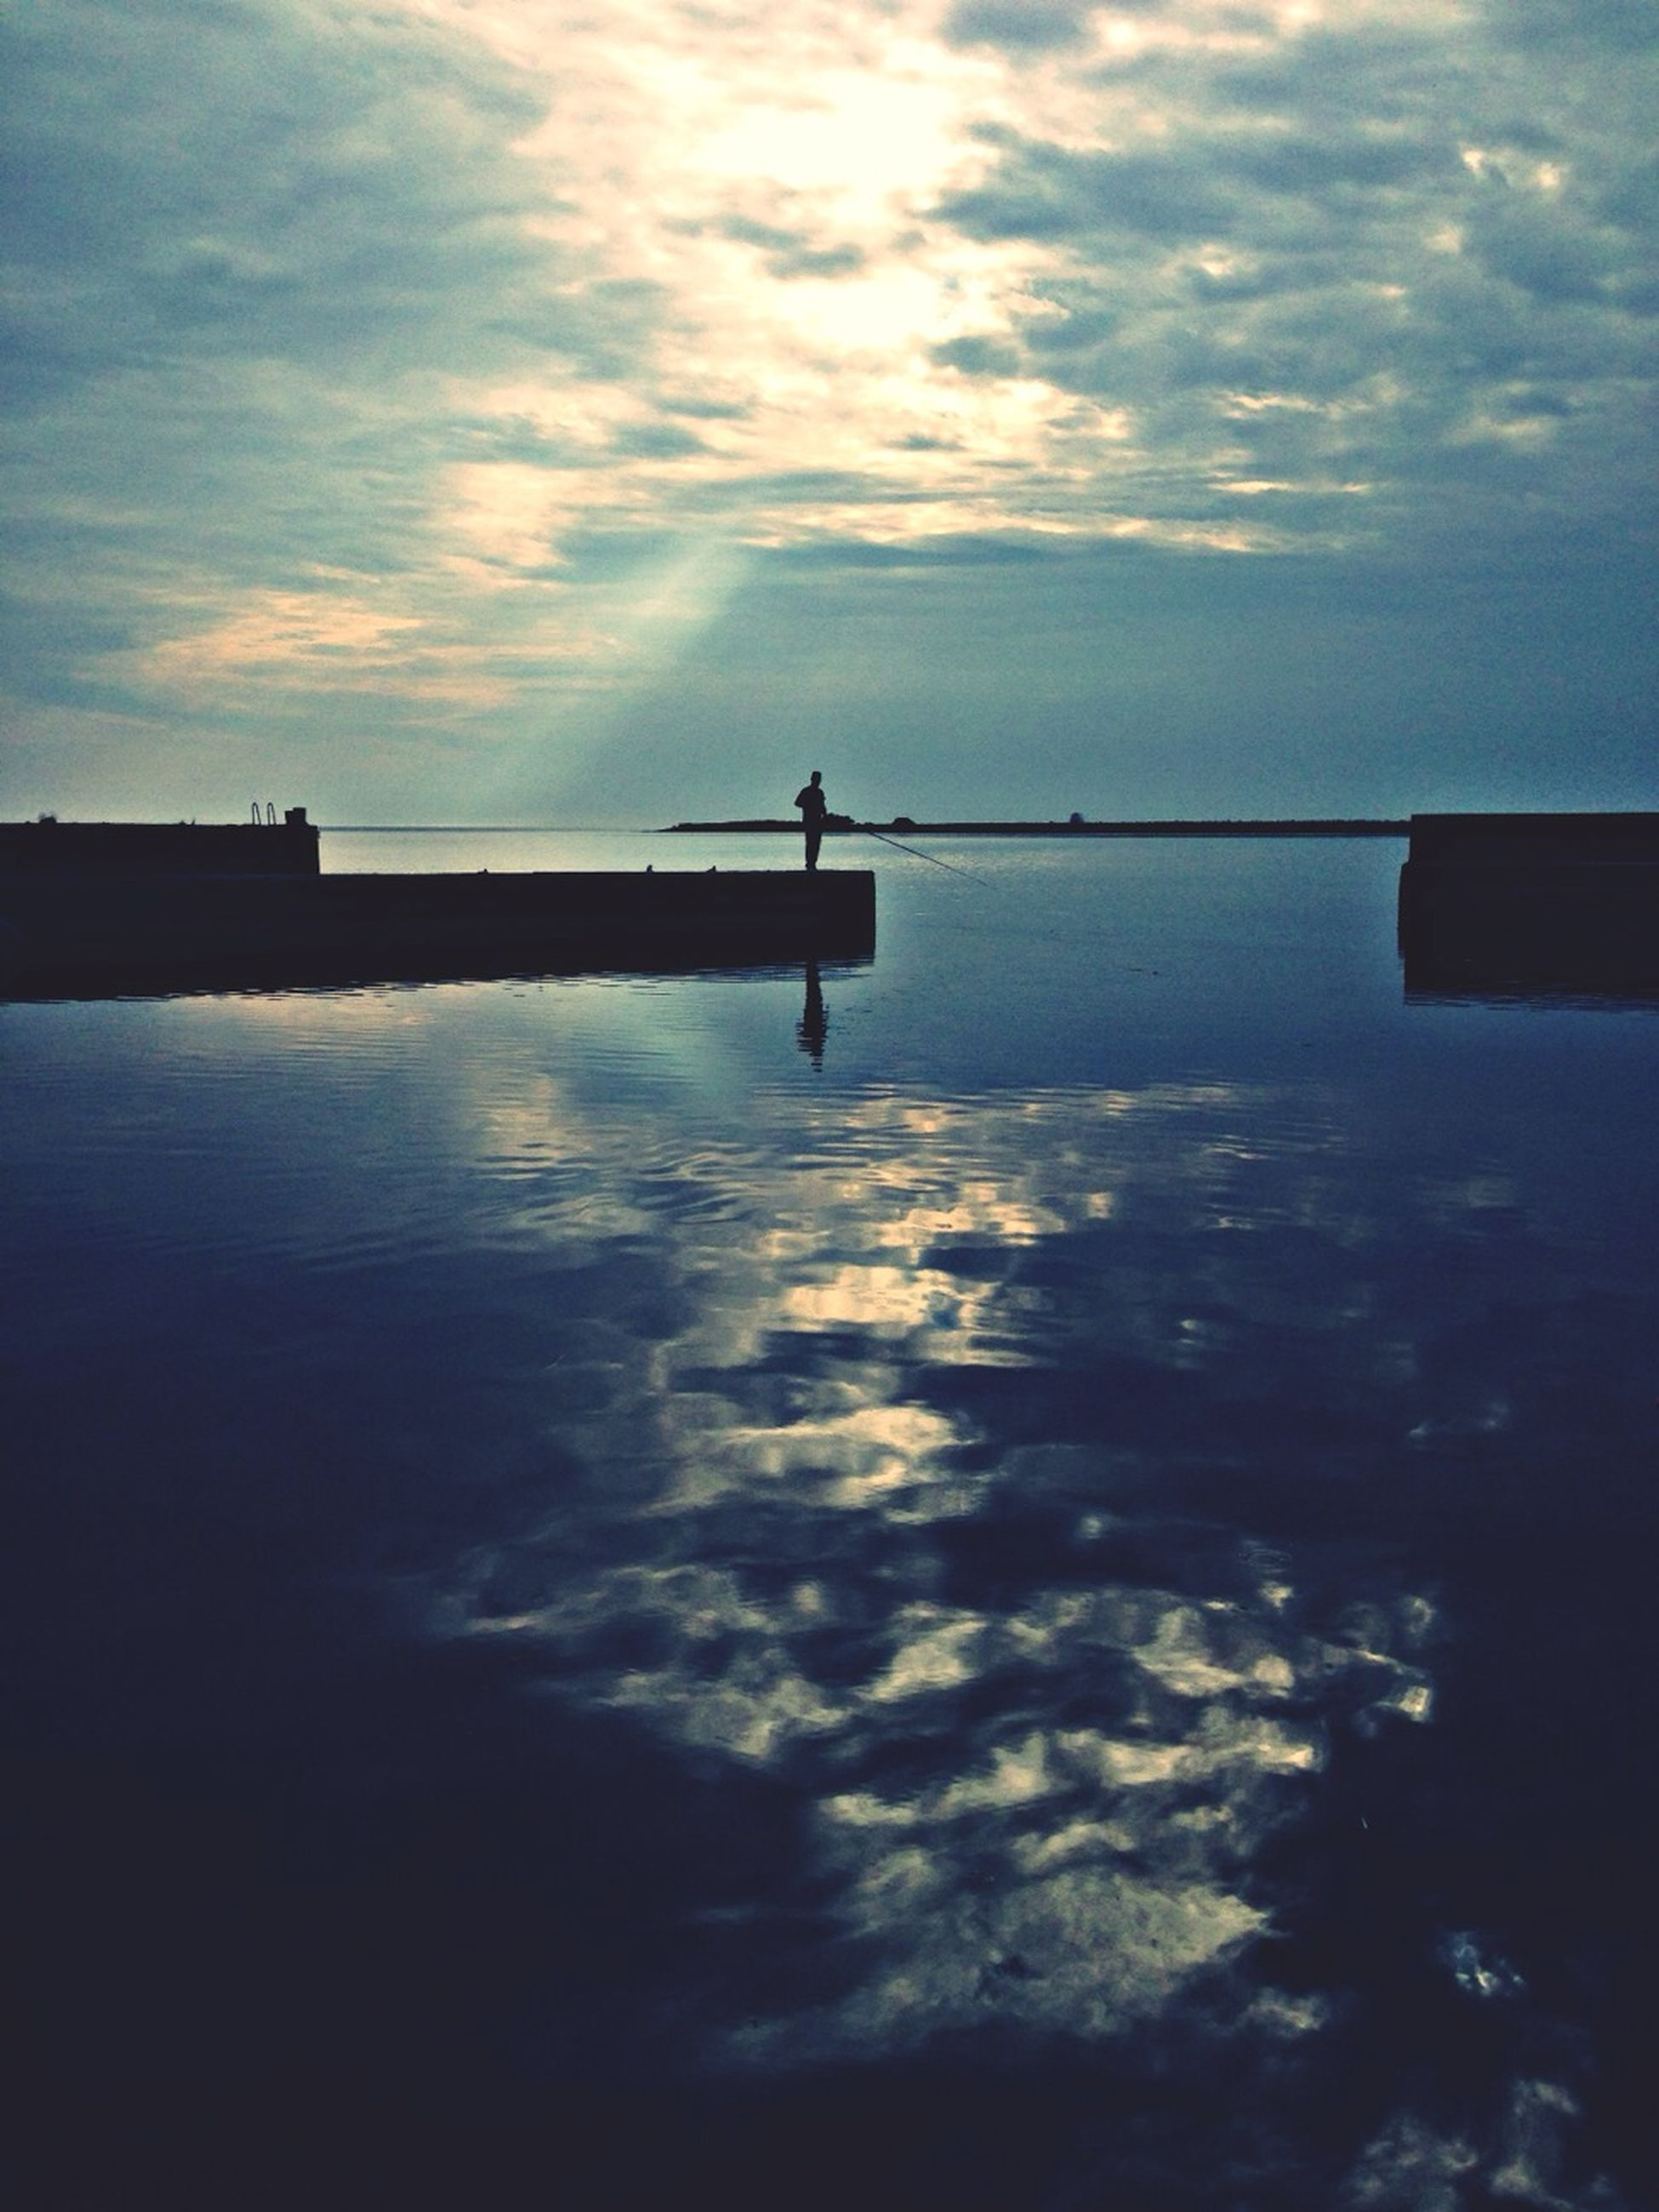 sky, water, sunset, silhouette, sea, cloud - sky, tranquility, tranquil scene, scenics, beauty in nature, reflection, horizon over water, nature, cloud, idyllic, cloudy, waterfront, calm, dusk, lake